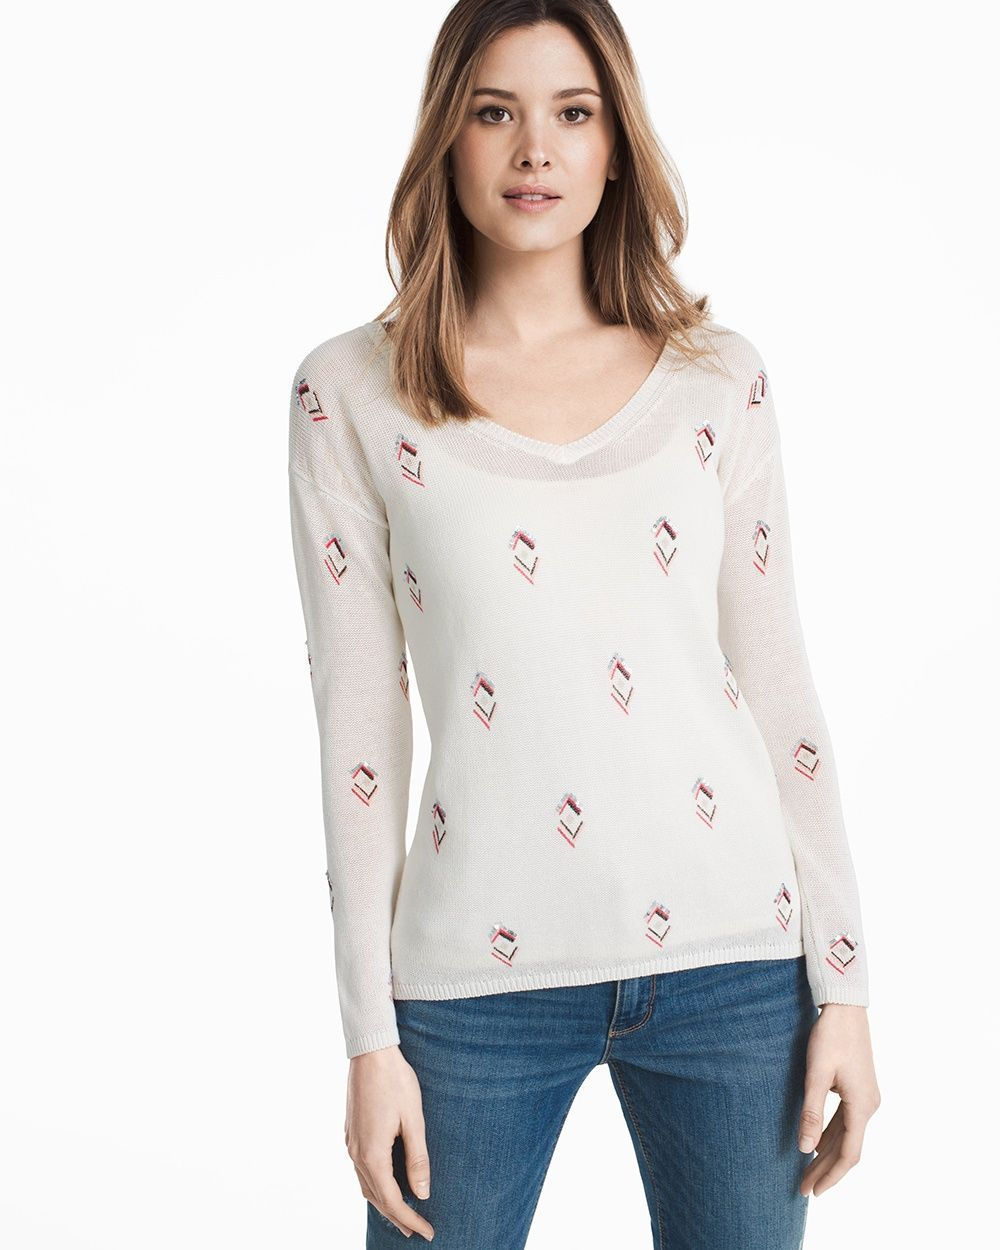 b6751a4d051a Women s V-neck Embellished Pullover Sweater by WHBM